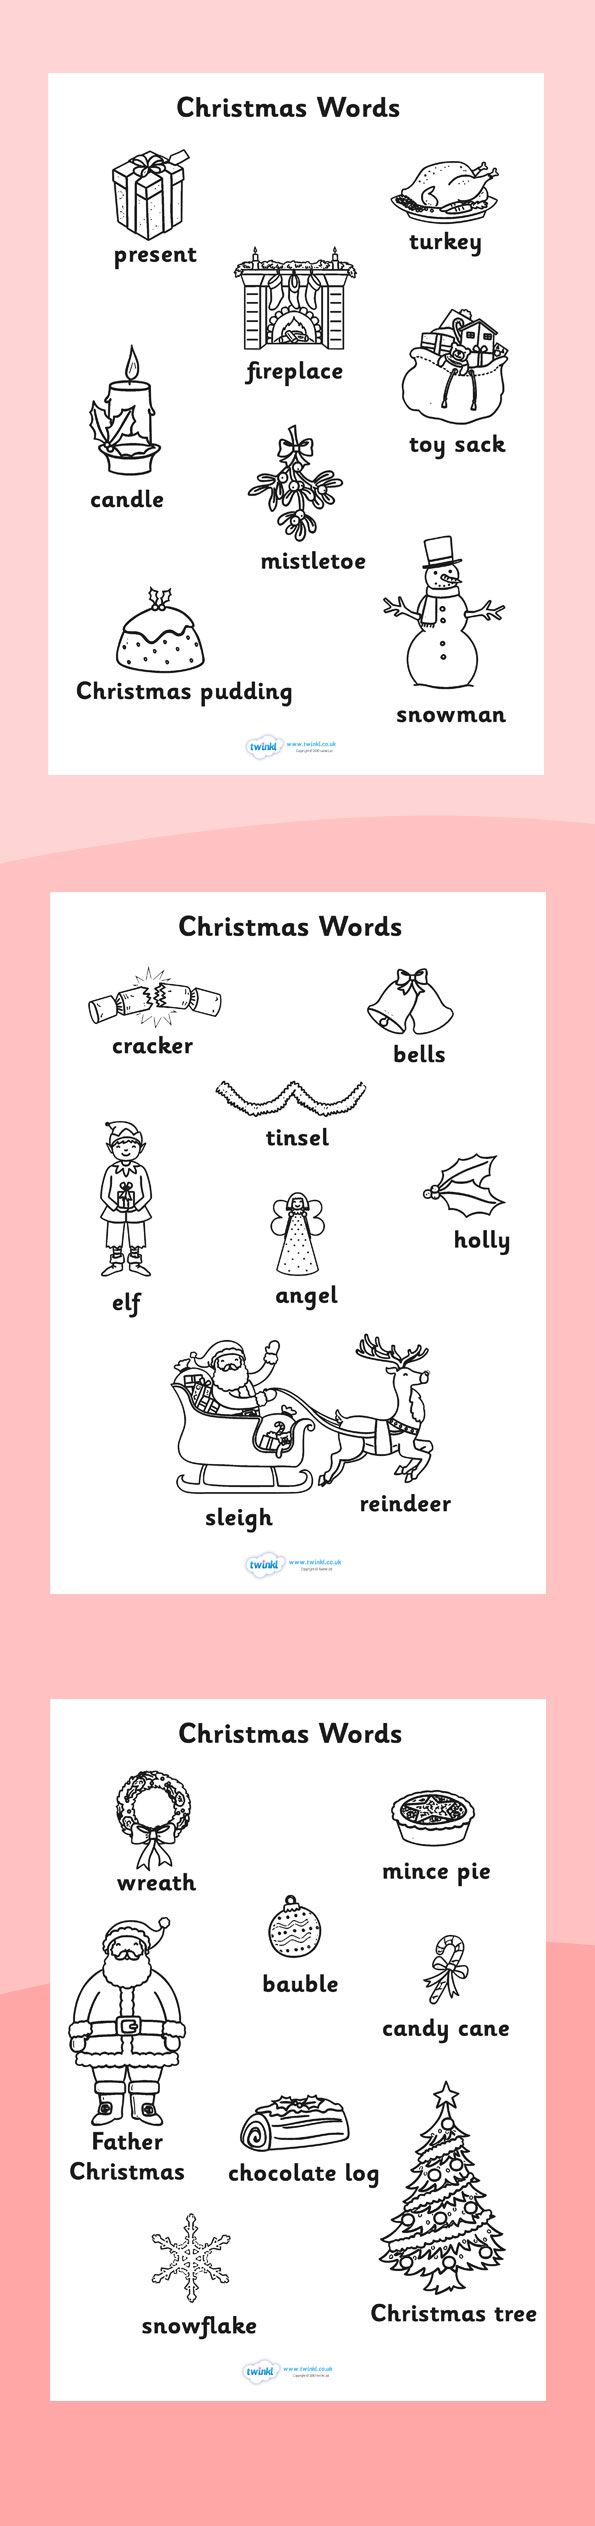 Christmas colouring in sheets twinkl - Twinkl Resources Christmas Words Colouring Sheets Printable Resources For Primary Eyfs